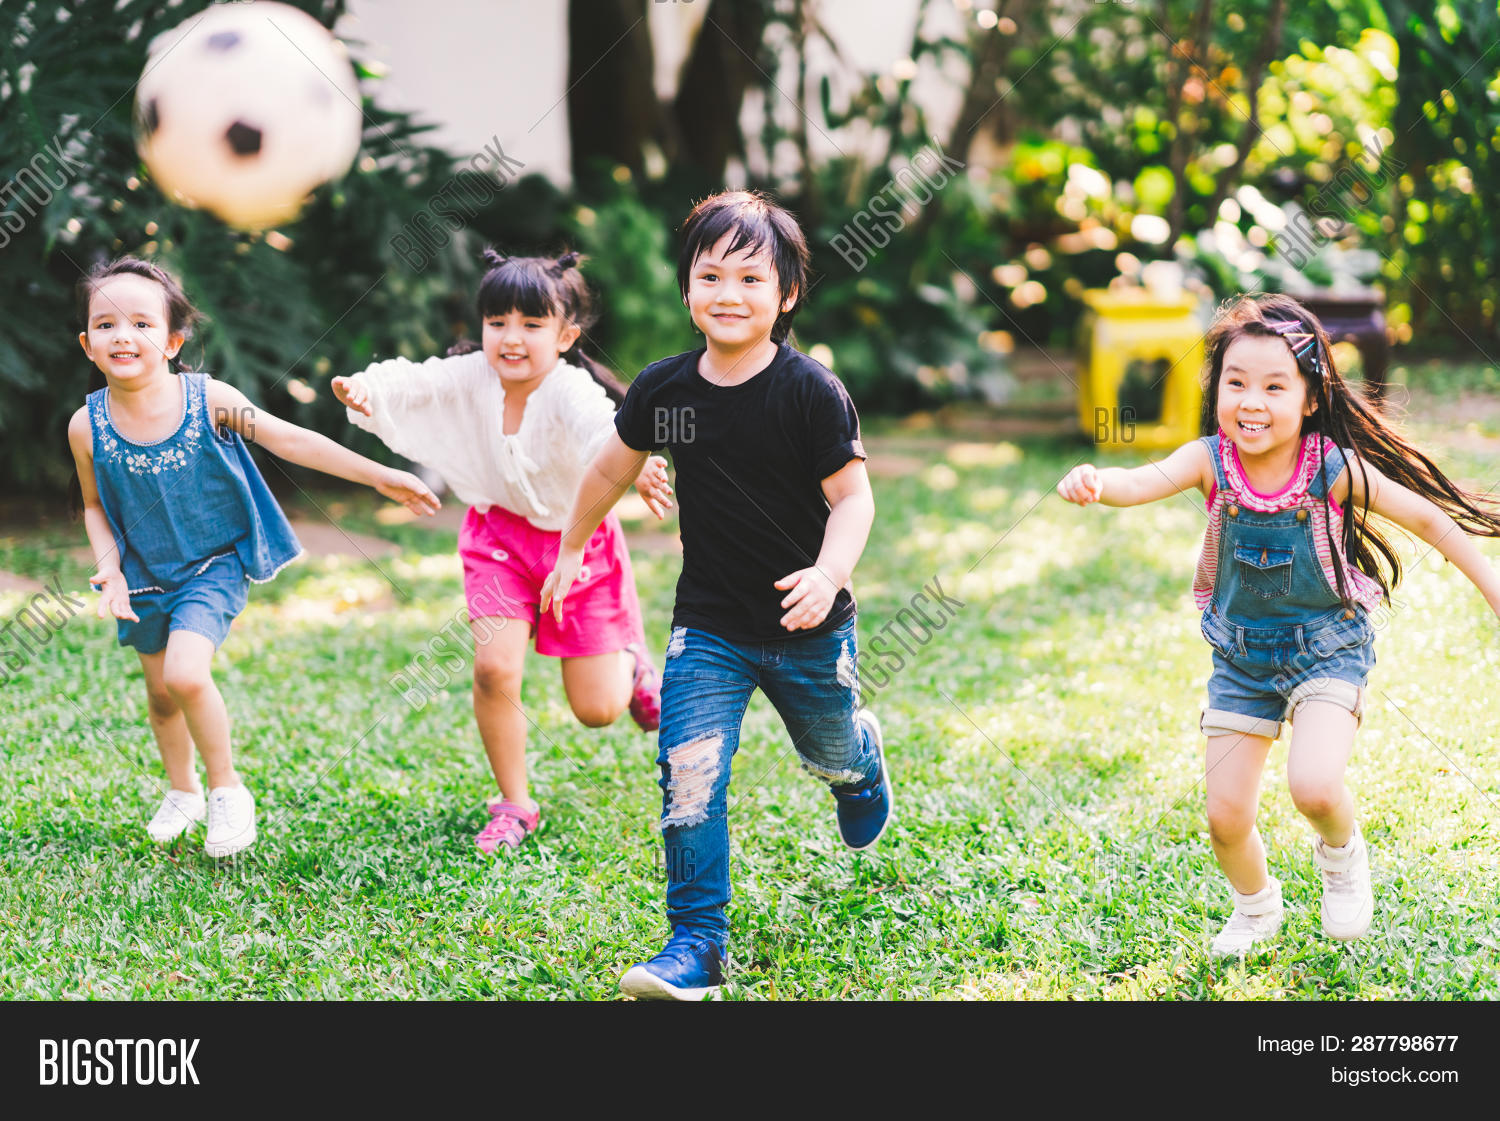 Asian And Mixed Race Happy Young Kids Running Playing Football Together In Garden. Multi-ethnic Chil